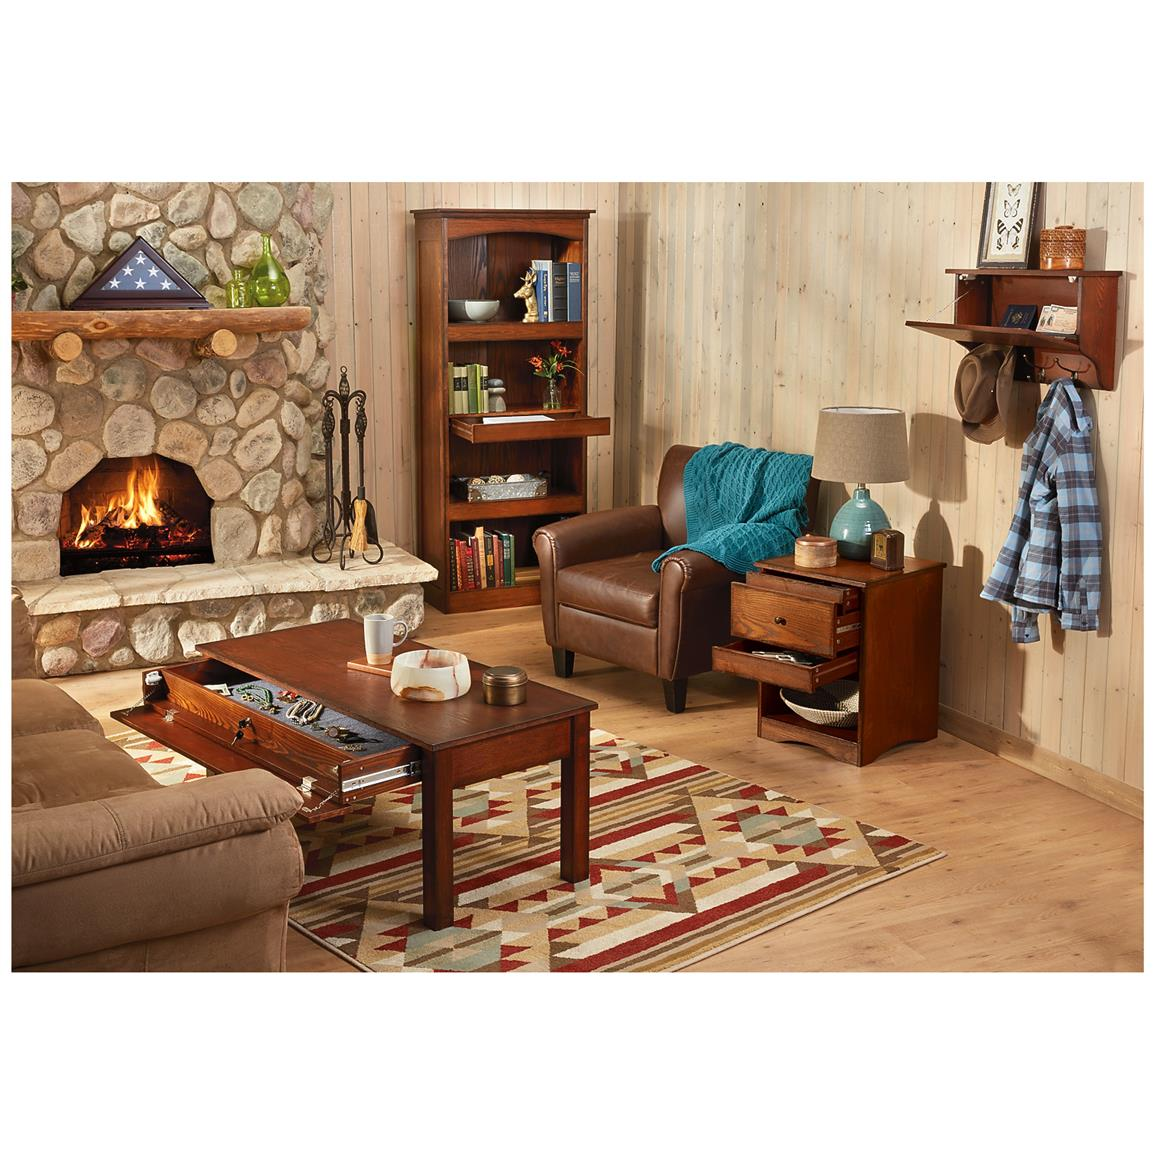 CASTLECREEK Gun Concealment End Table - 671297, Living Room at ...